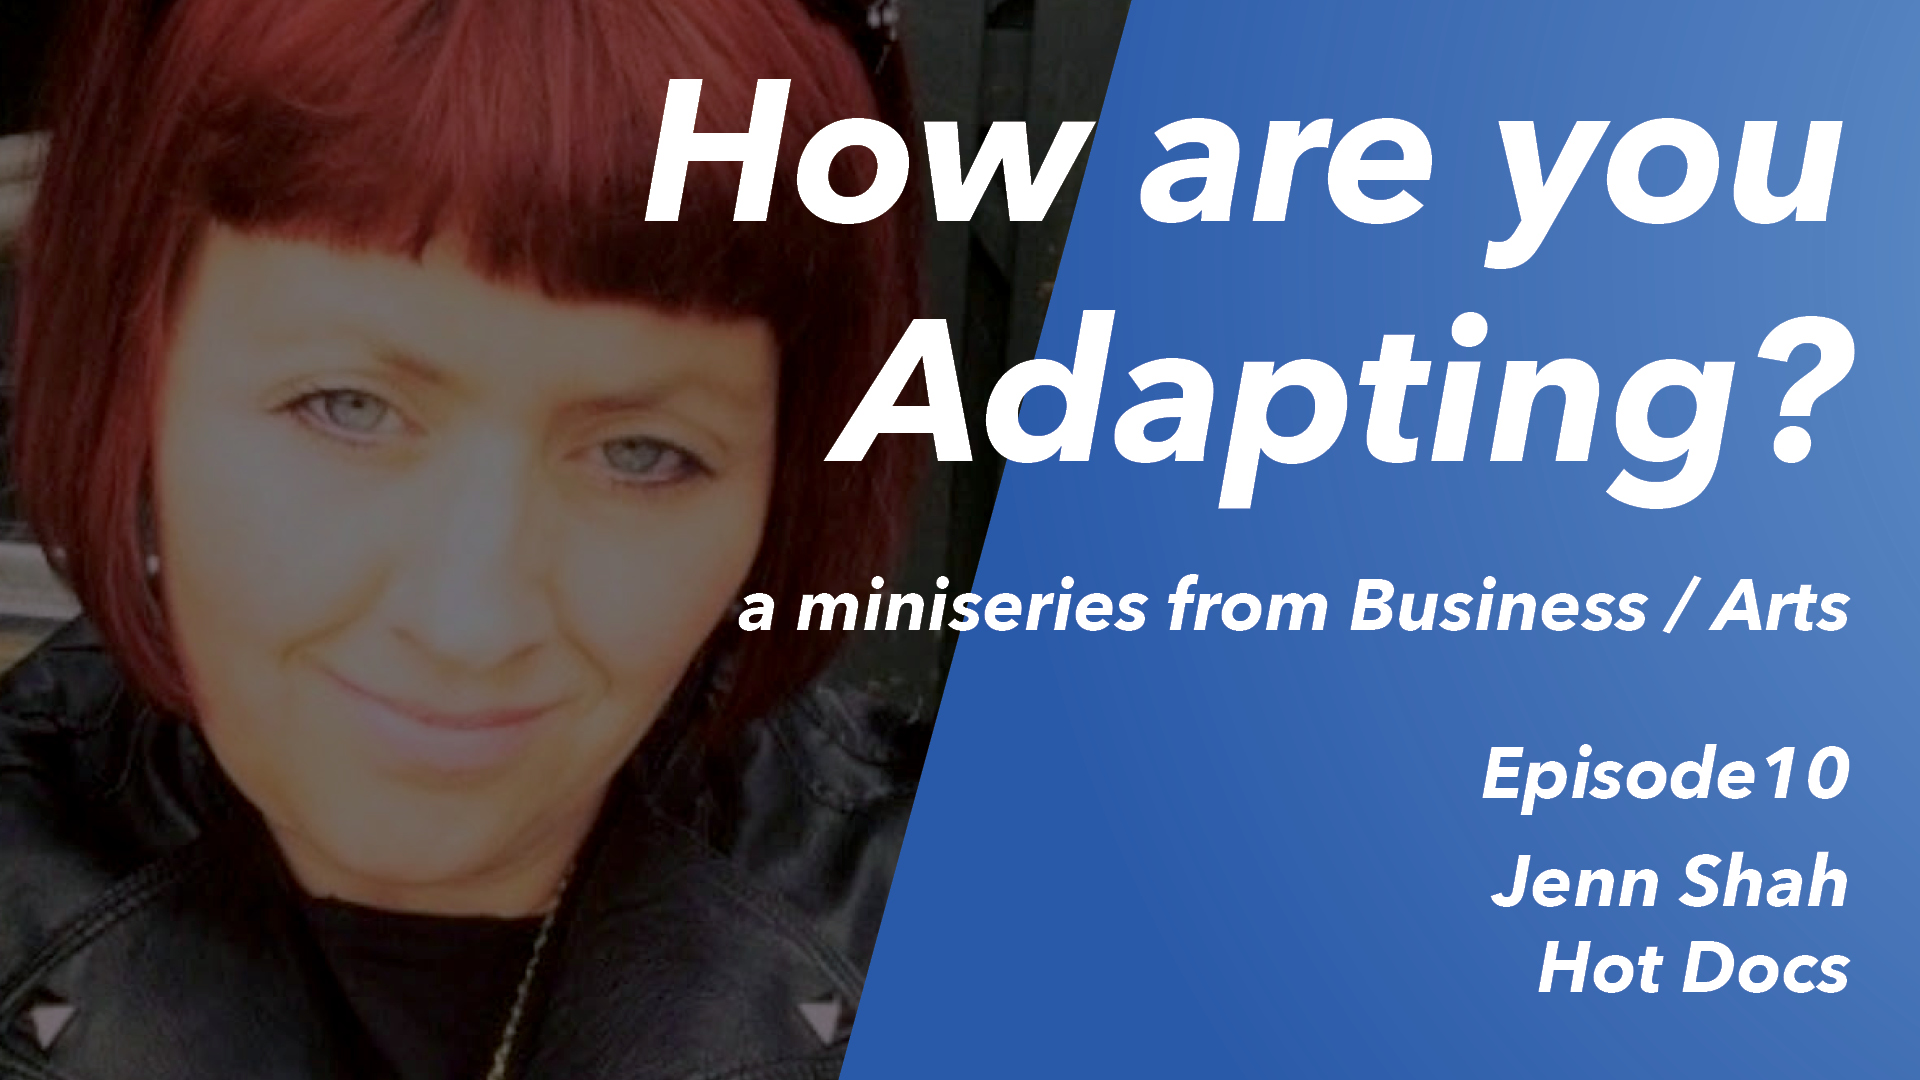 How are you Adapting? Ep 10: Jenn Shah (Hot Docs)